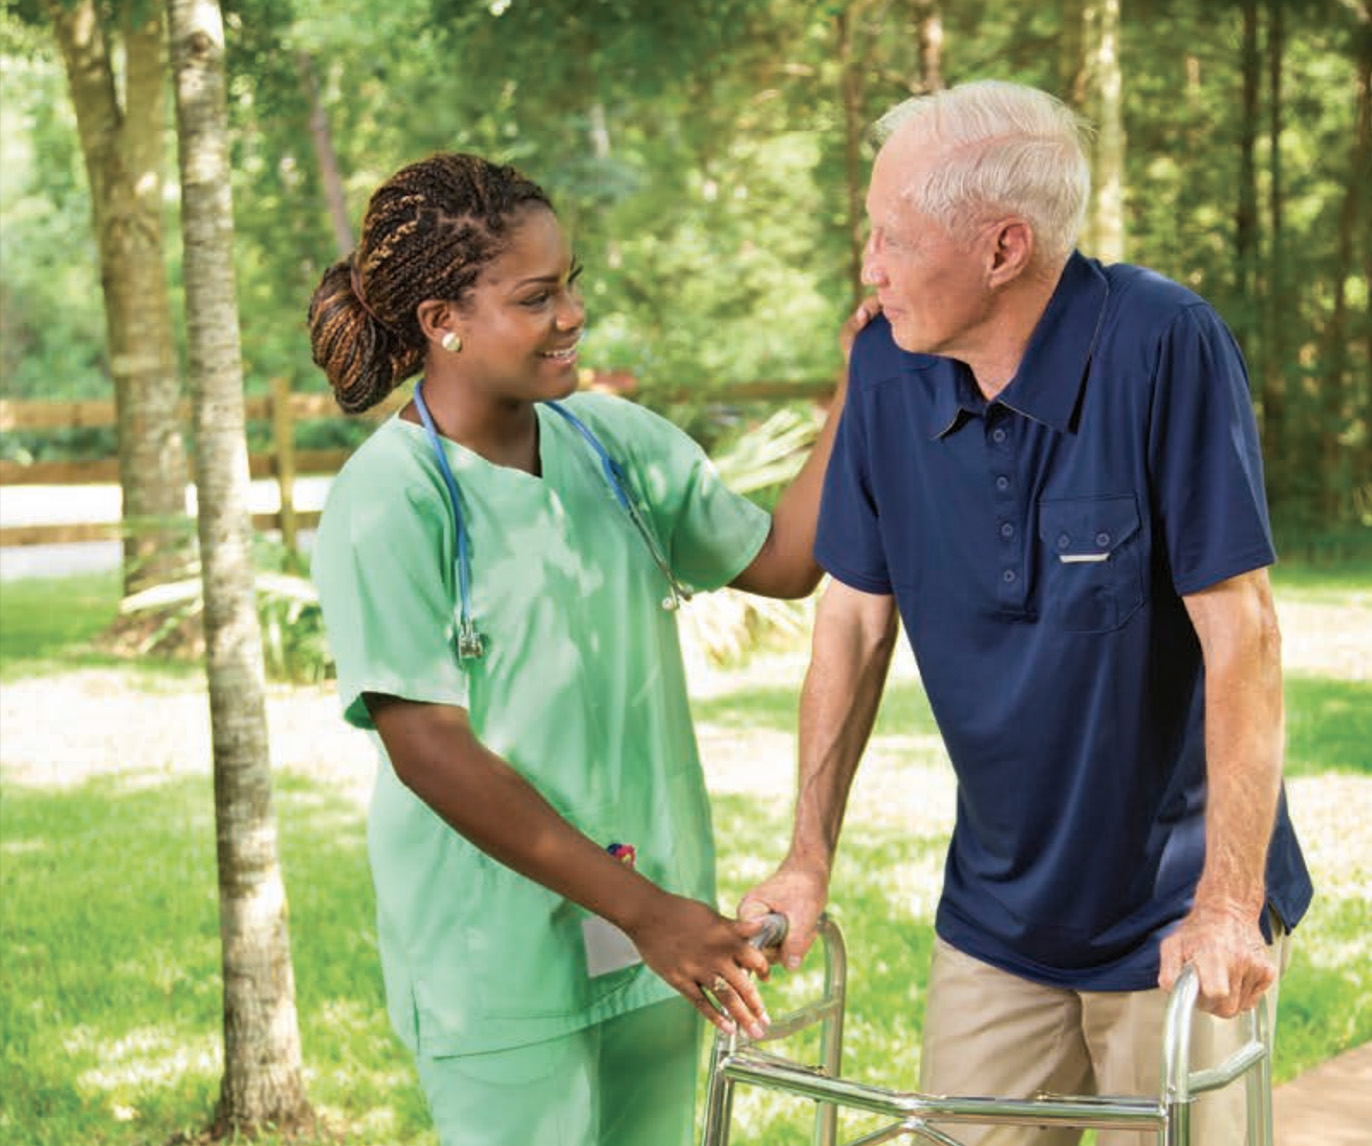 Skilled Nursing | Moorings Park